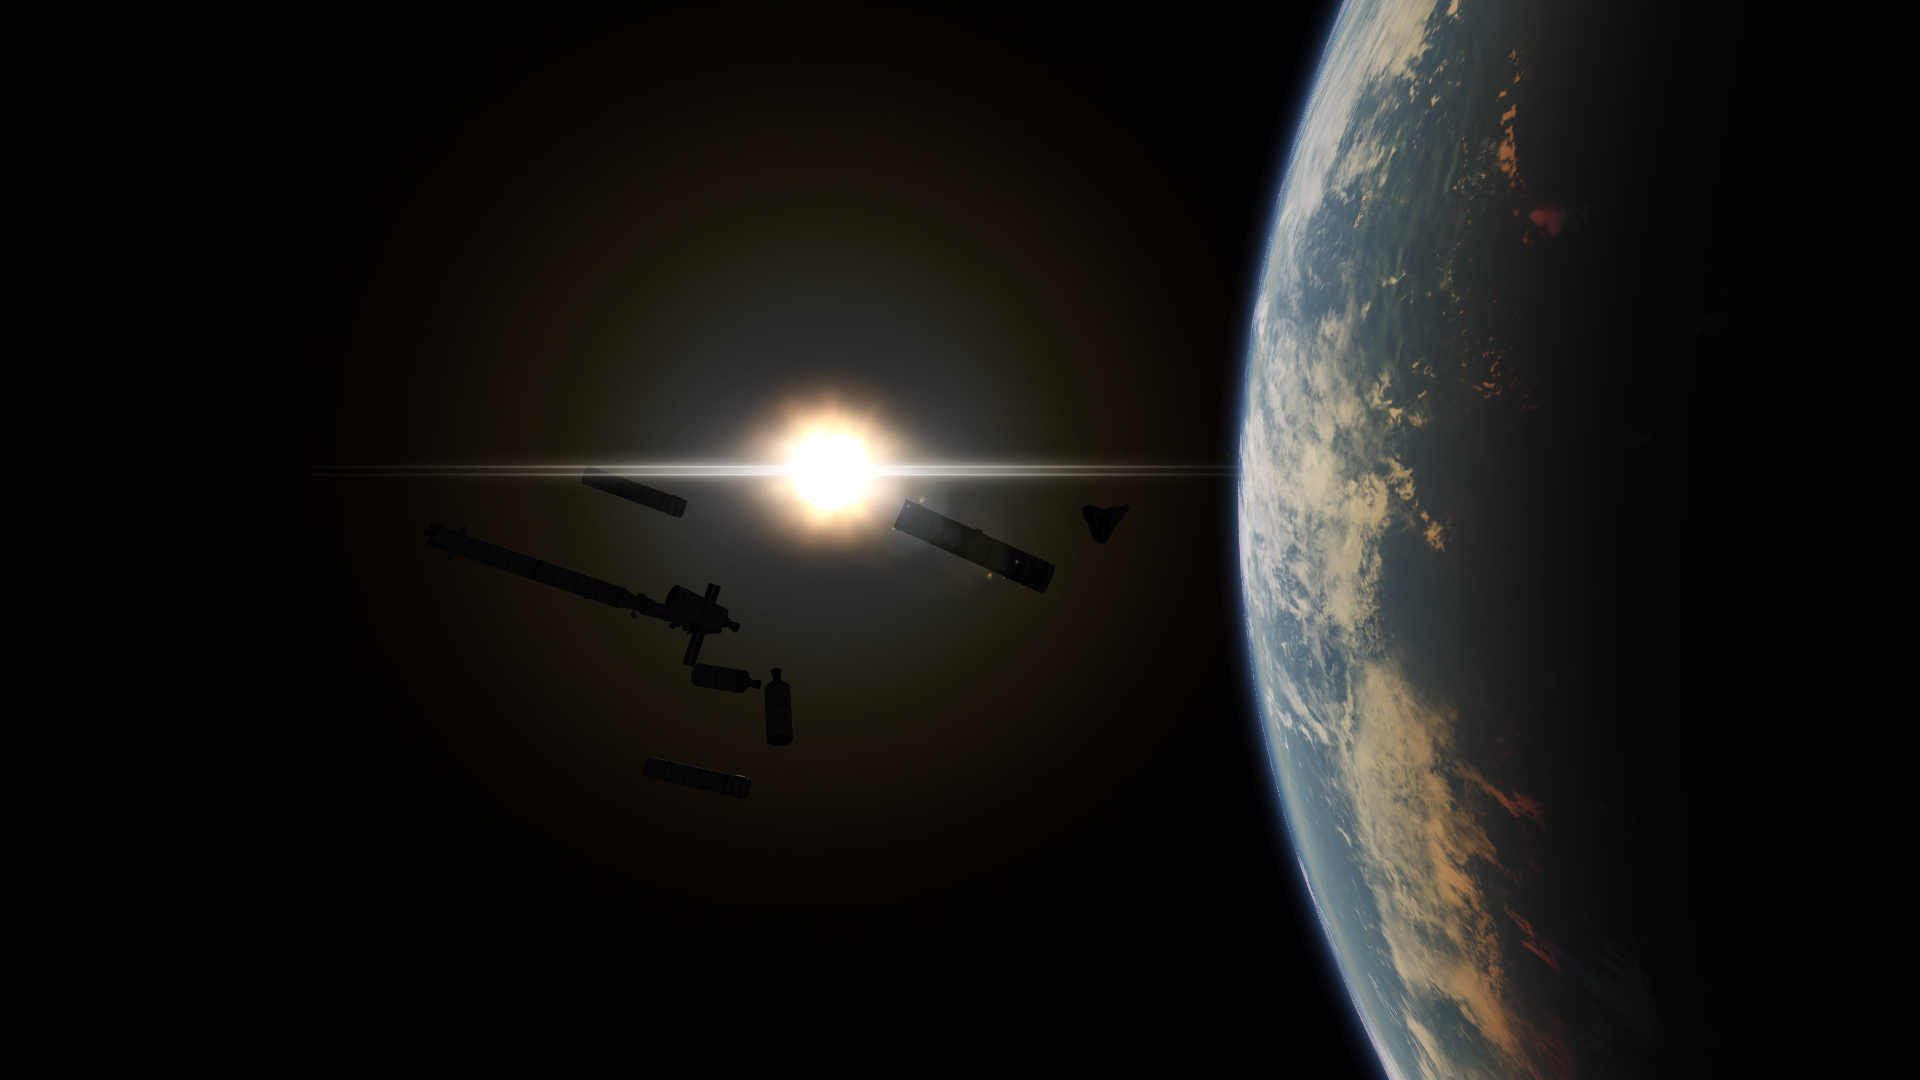 carbon-4-fuel-docking